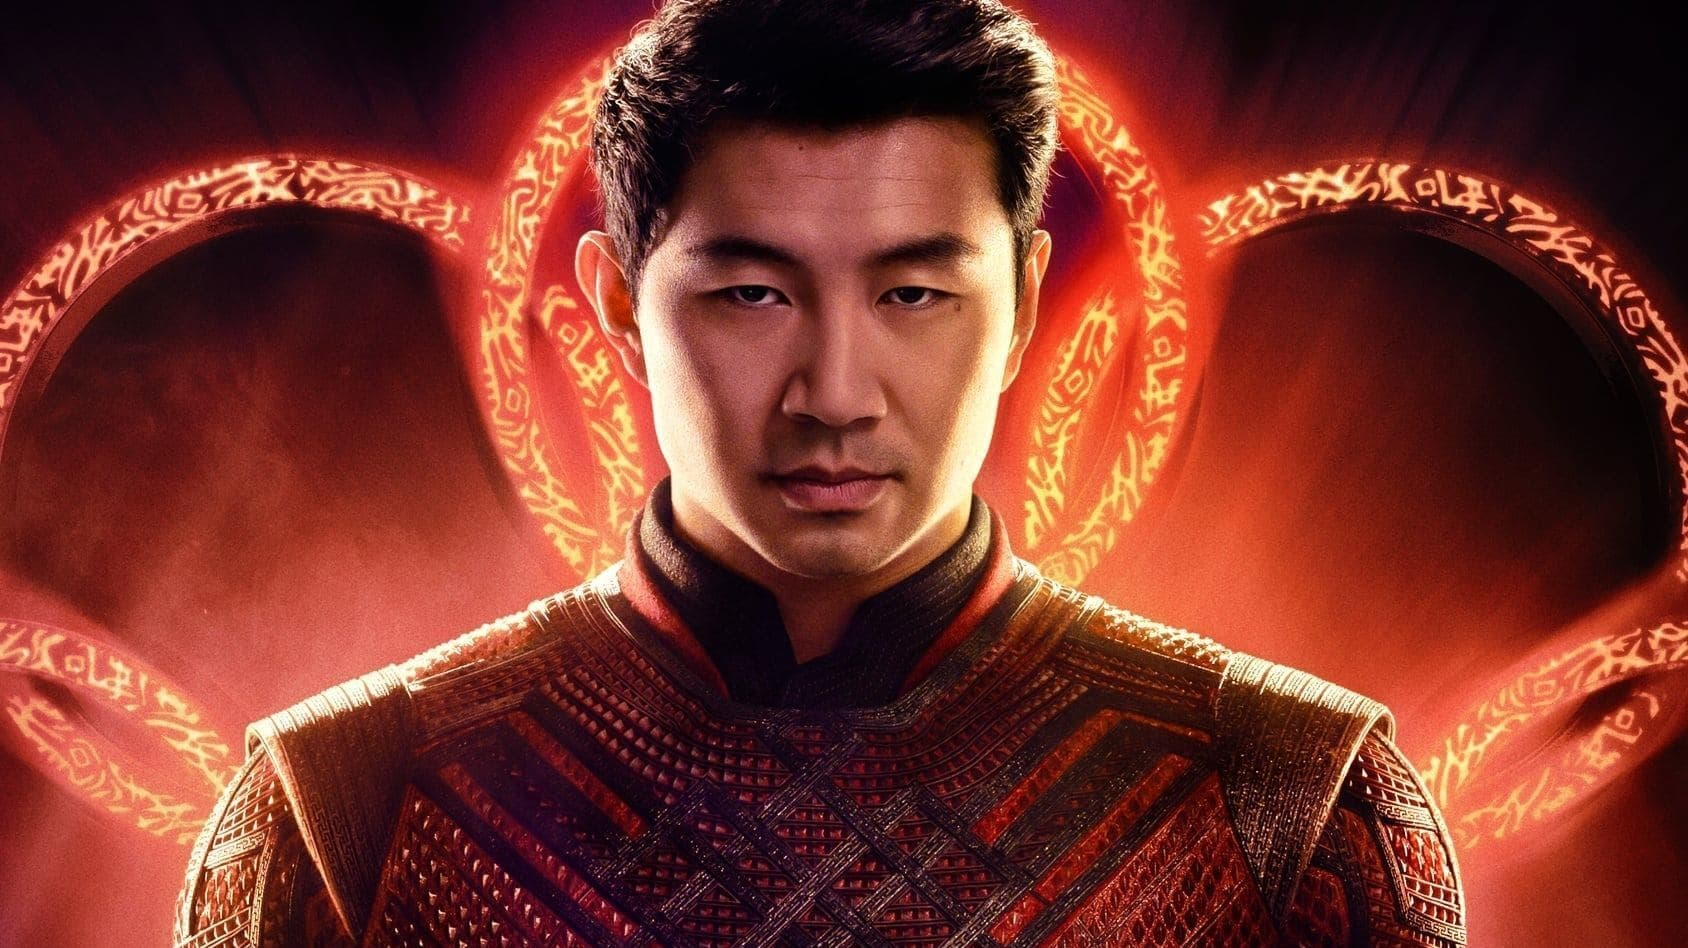 'Shang-Chi' Star Simu Liu Shares Life-Changing Phone Call with Kevin Feige